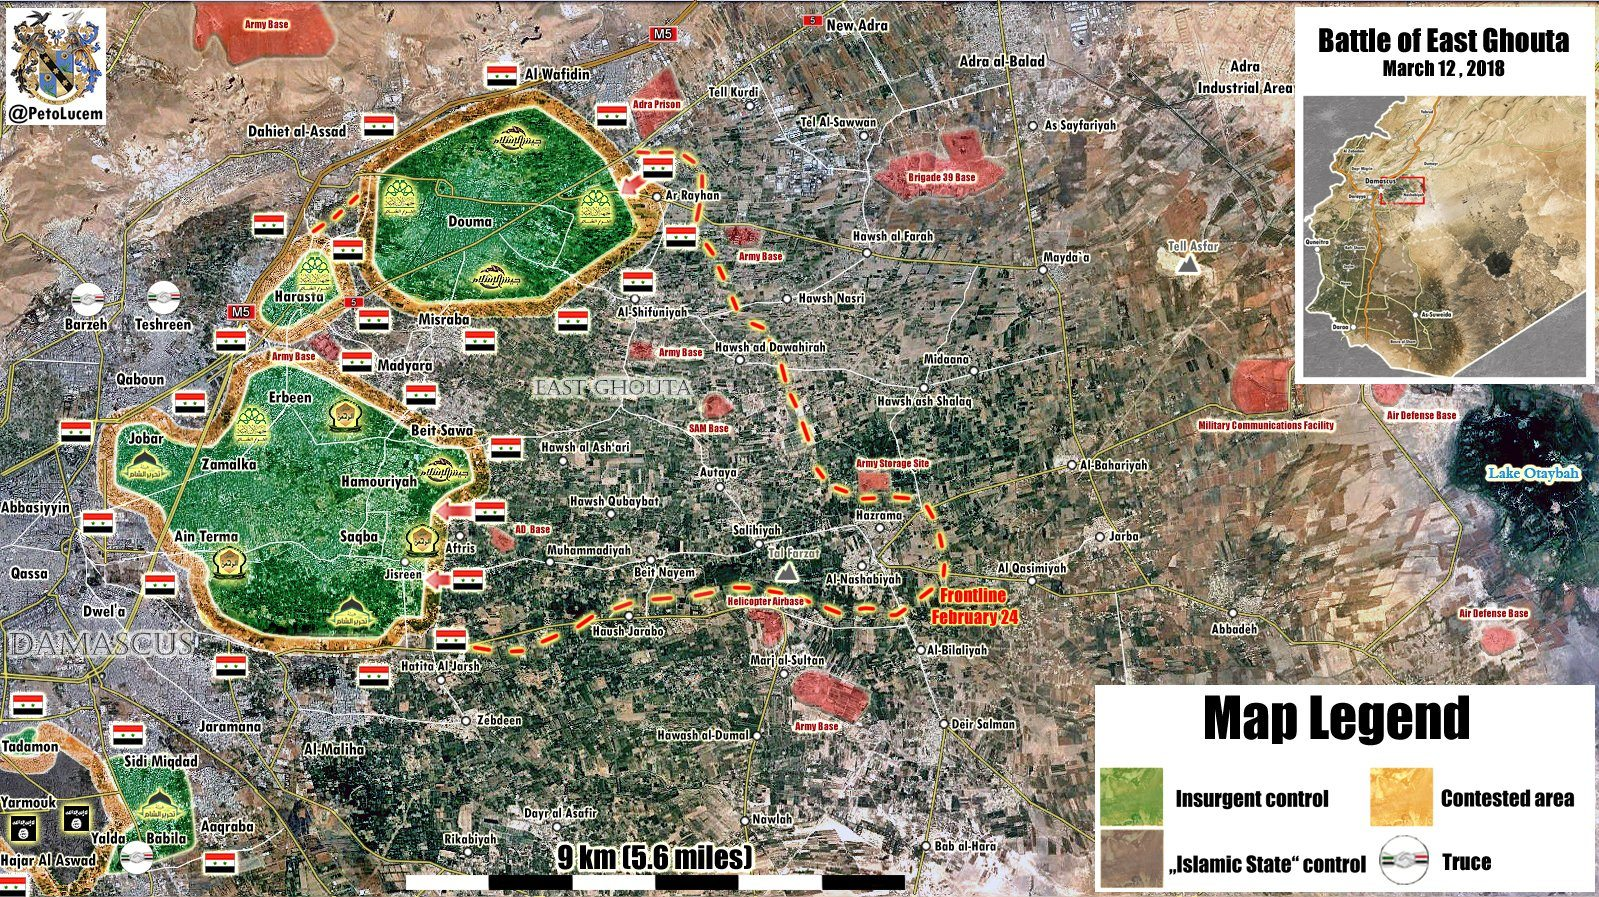 Image [East Ghouta Map courtesy of @PetoLucem, Mar. 12, 2018]